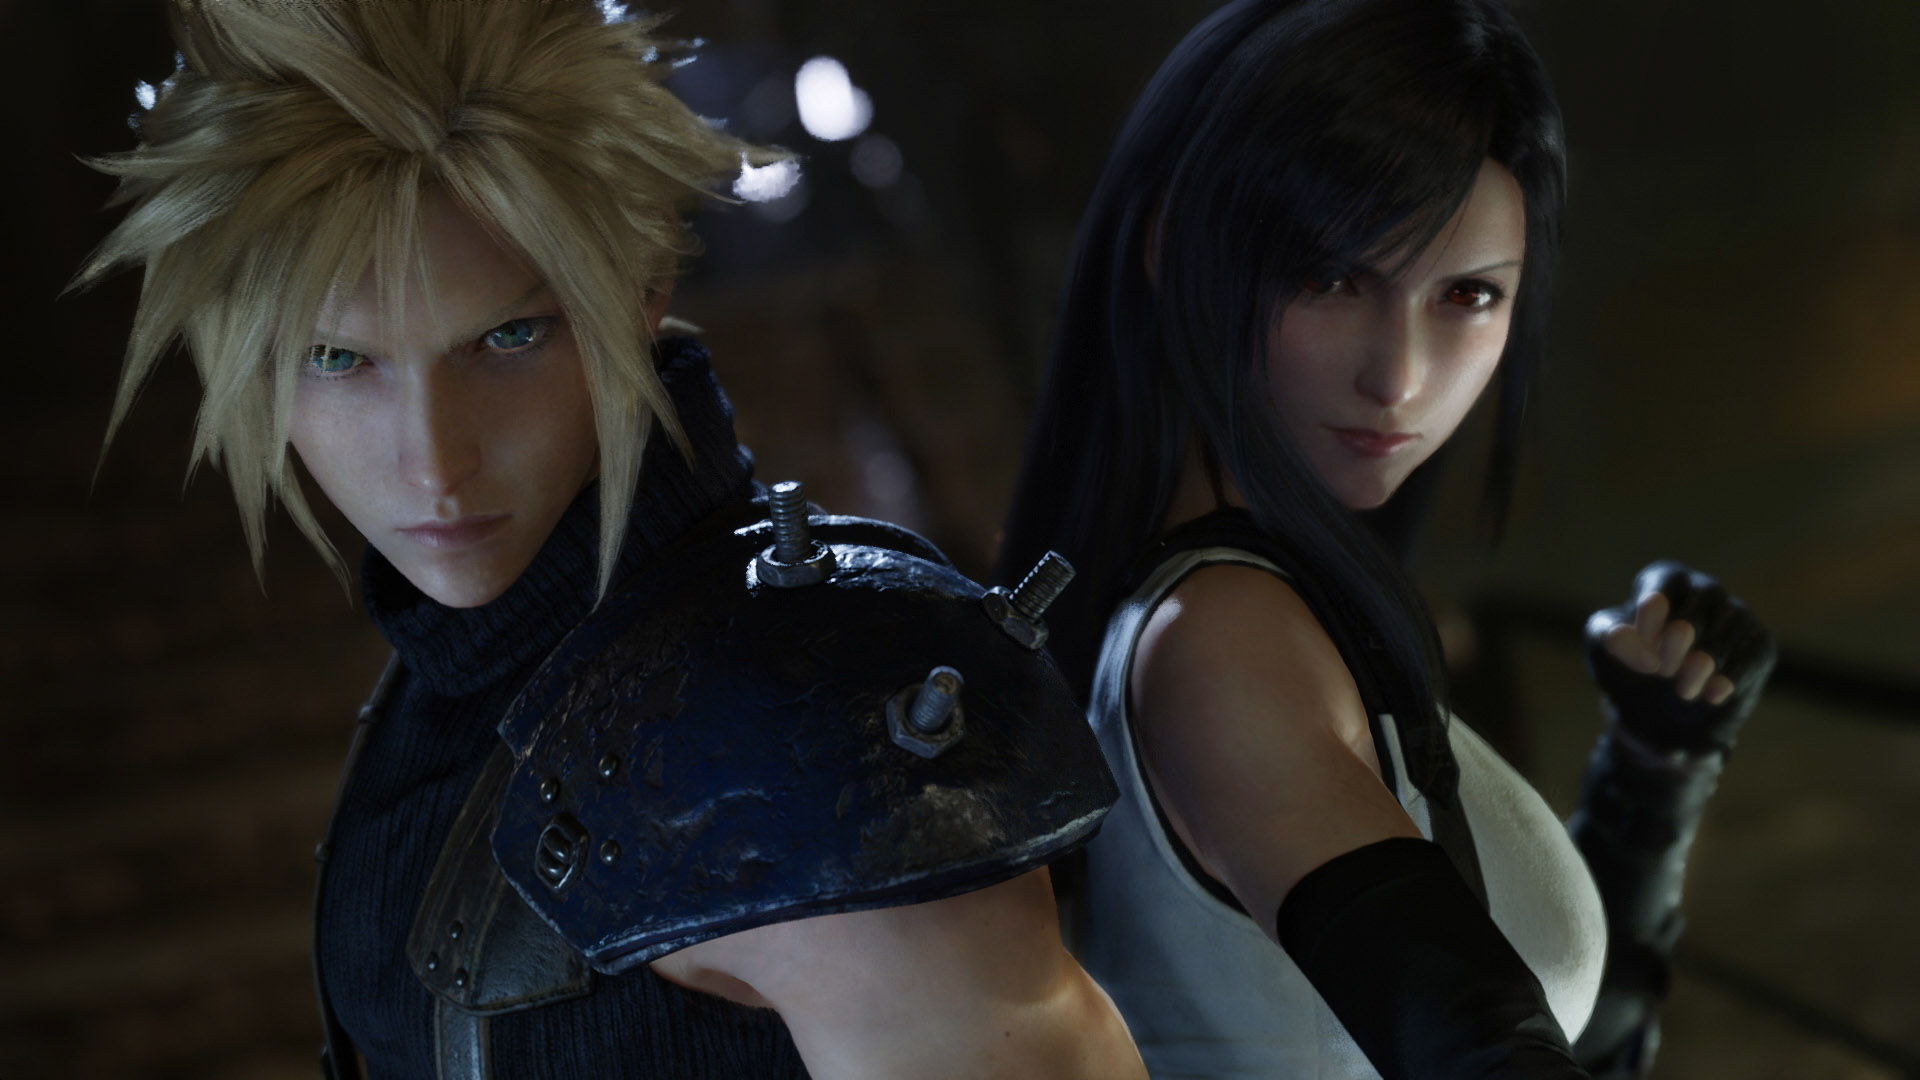 Final Fantasy VII Remake Could Take Years to Finish